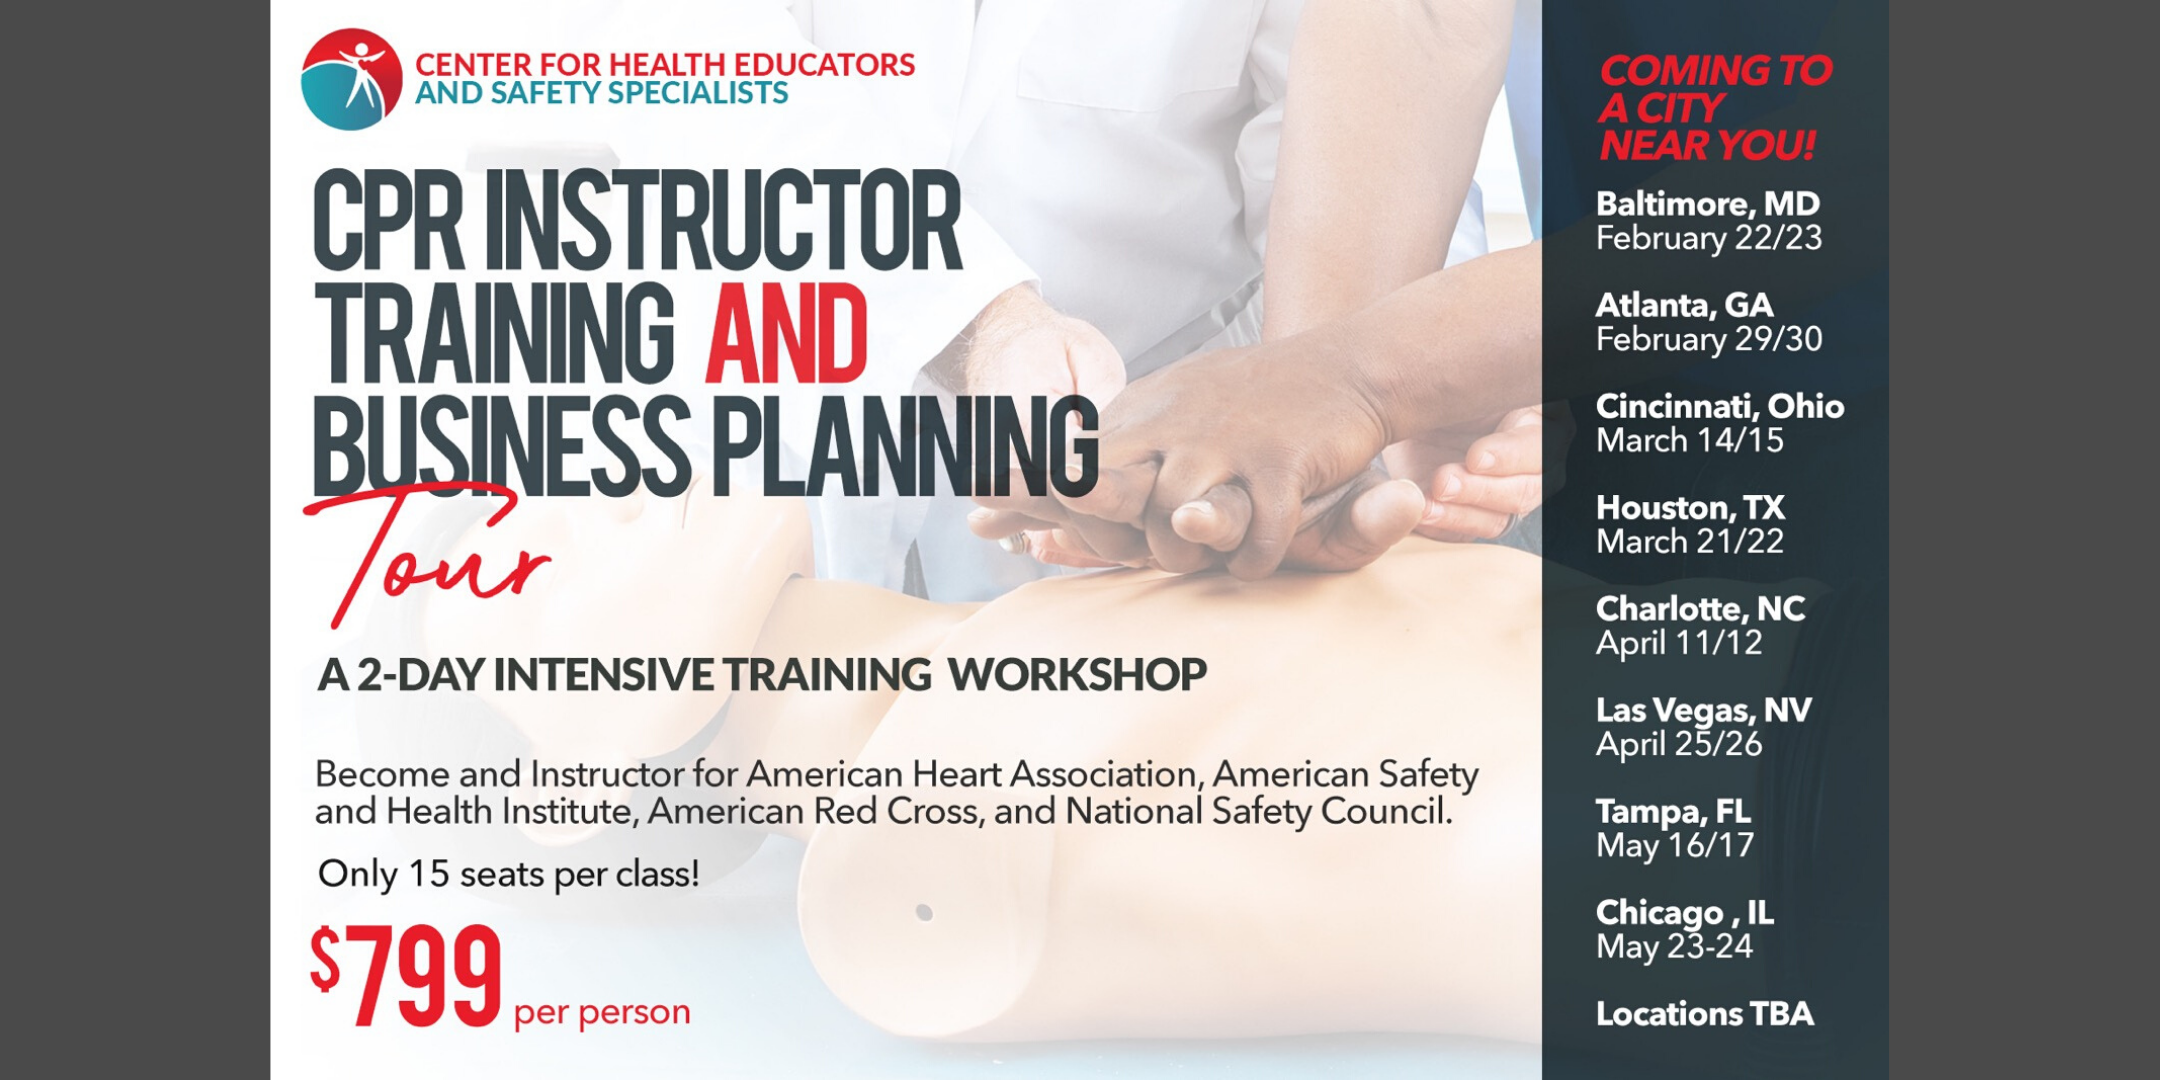 Mobile CPR Instructor Training and CPR Business Planning Tour- Chicago